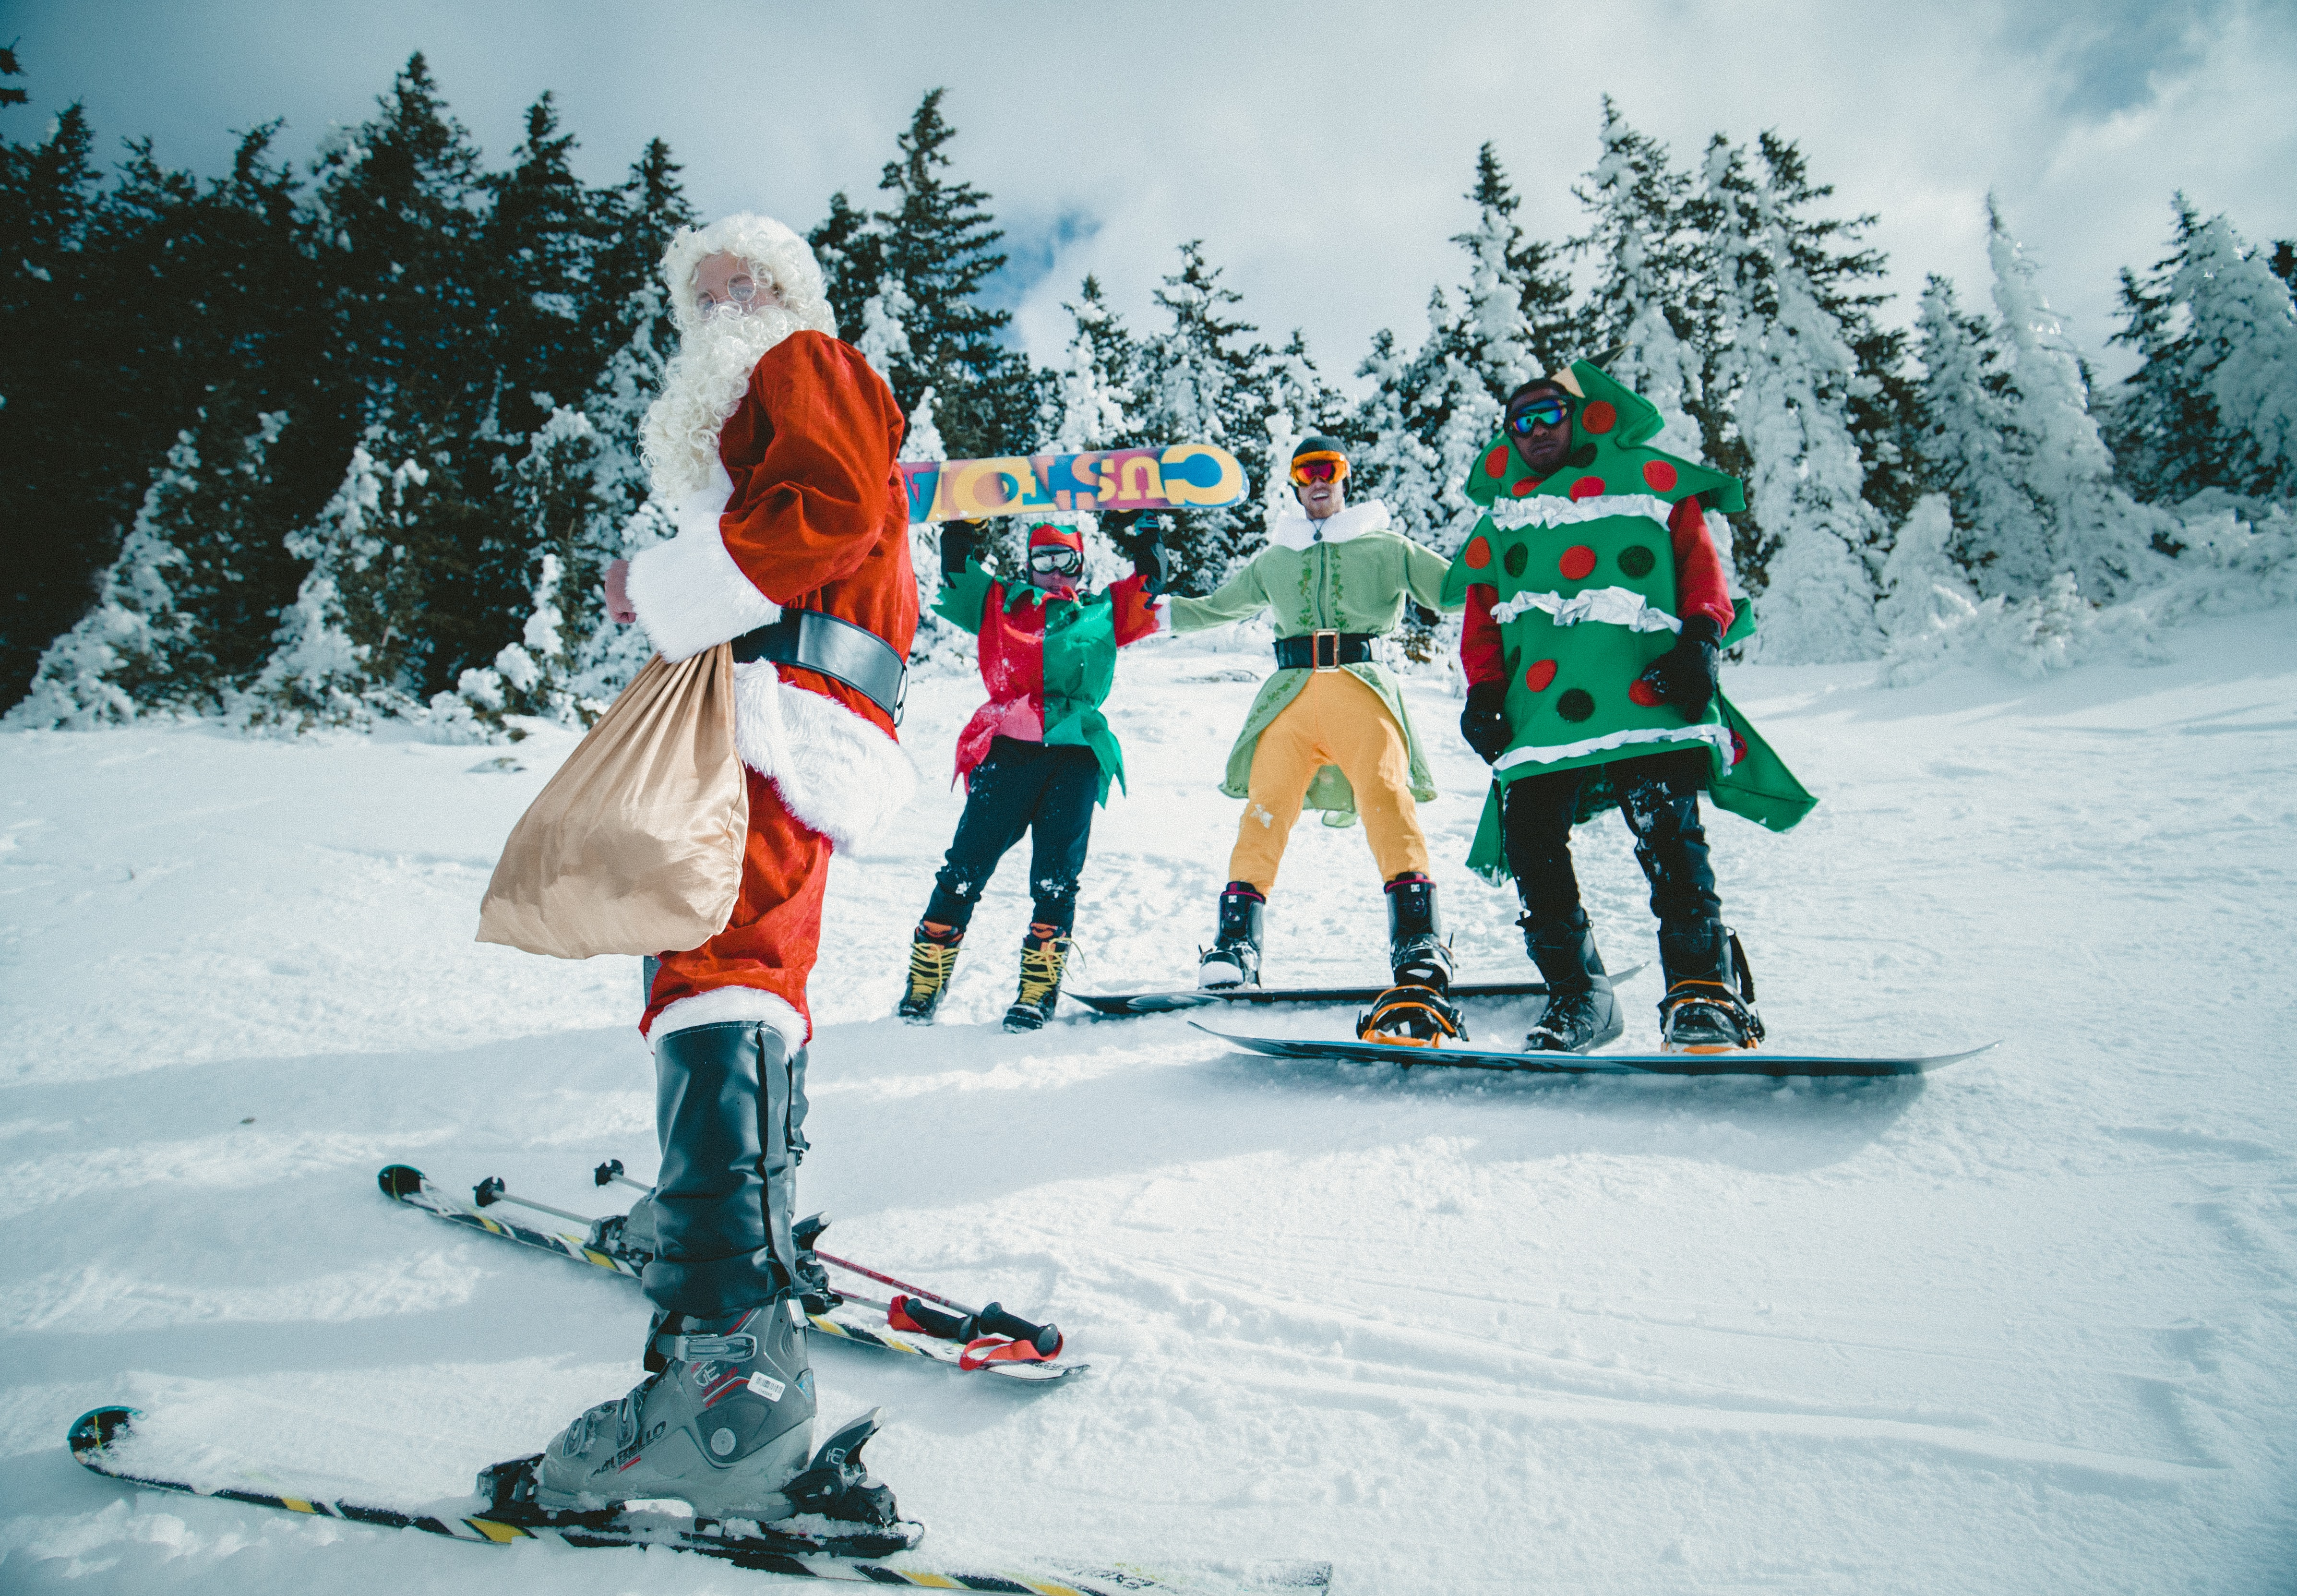 A man dressed as Father Christmas holding a sack and skiing on snow in front of trees, with people on snowboards dressed as elves and a Christmas tree behind him